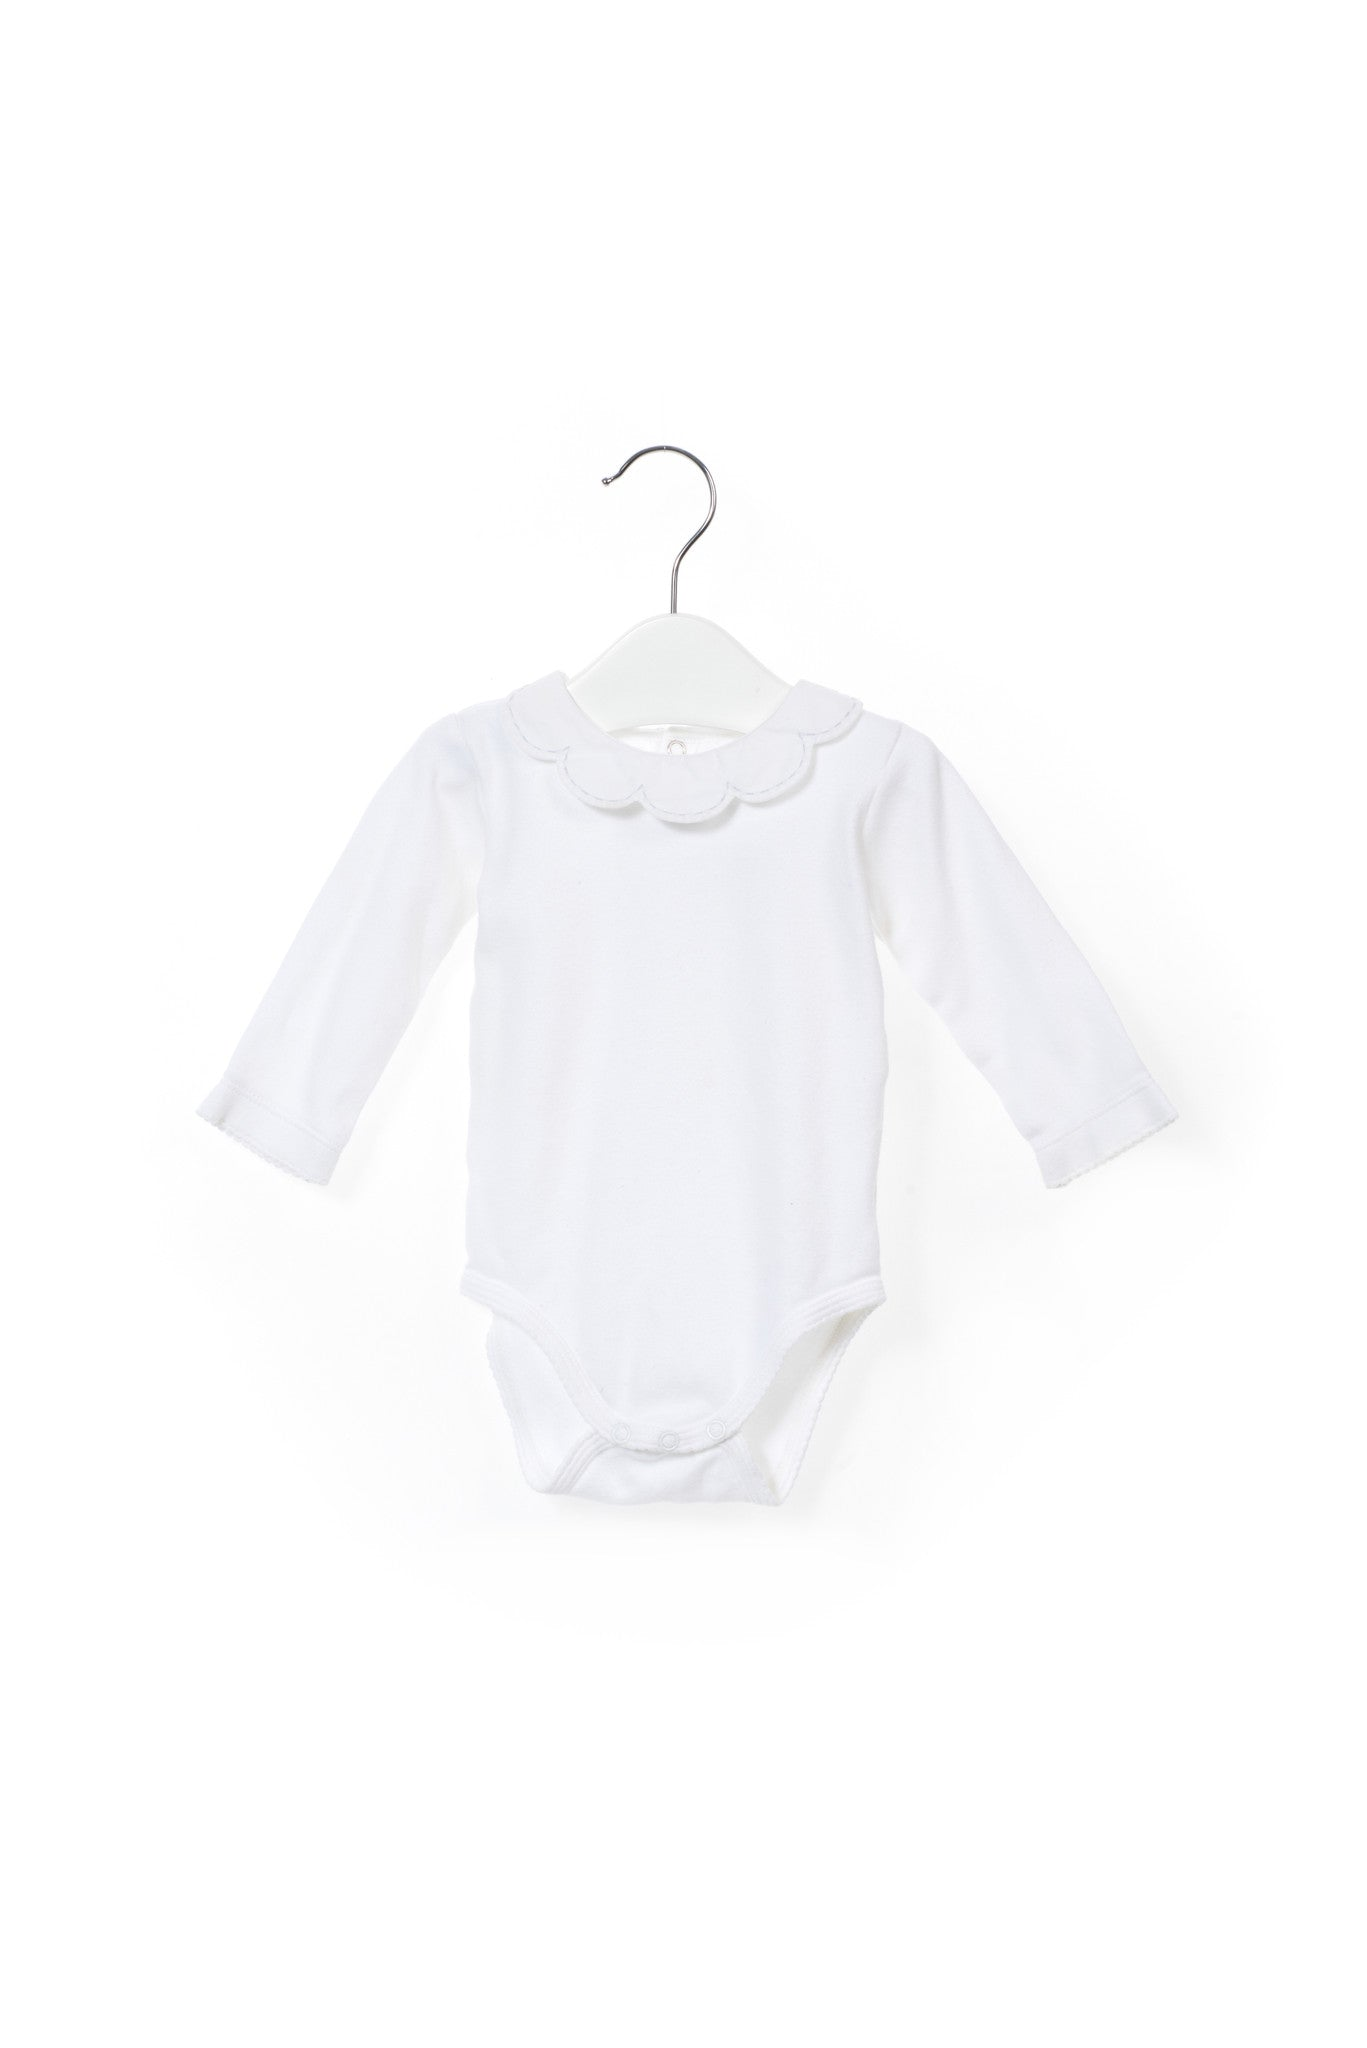 10001136 Jacadi Baby~Bodysuit 3-6M at Retykle